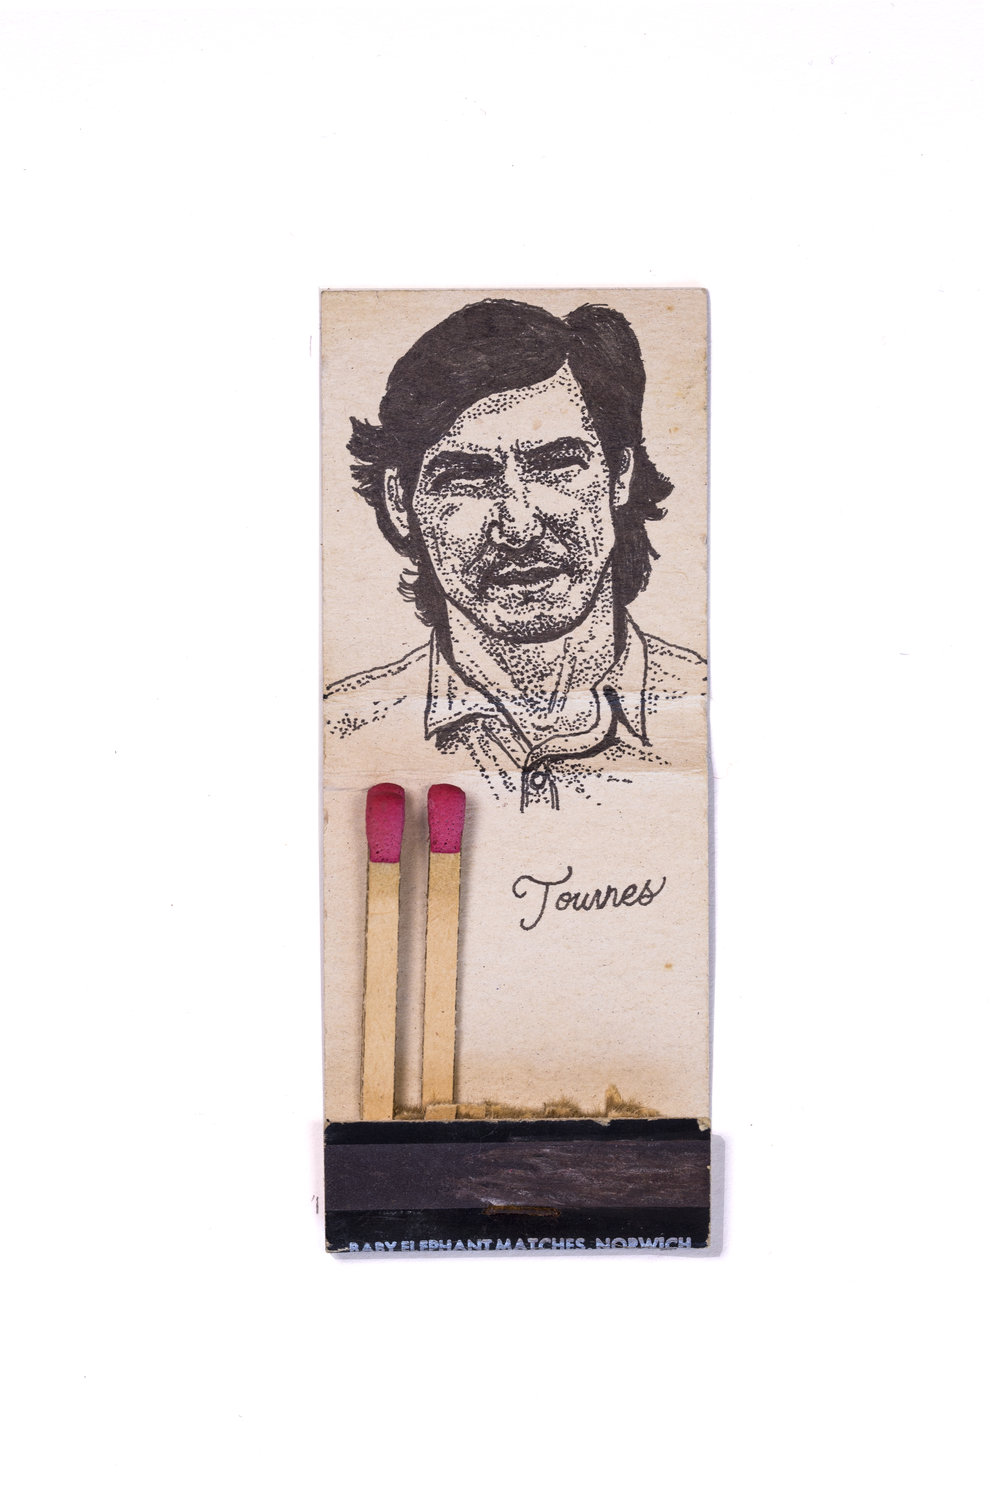 32. Townes